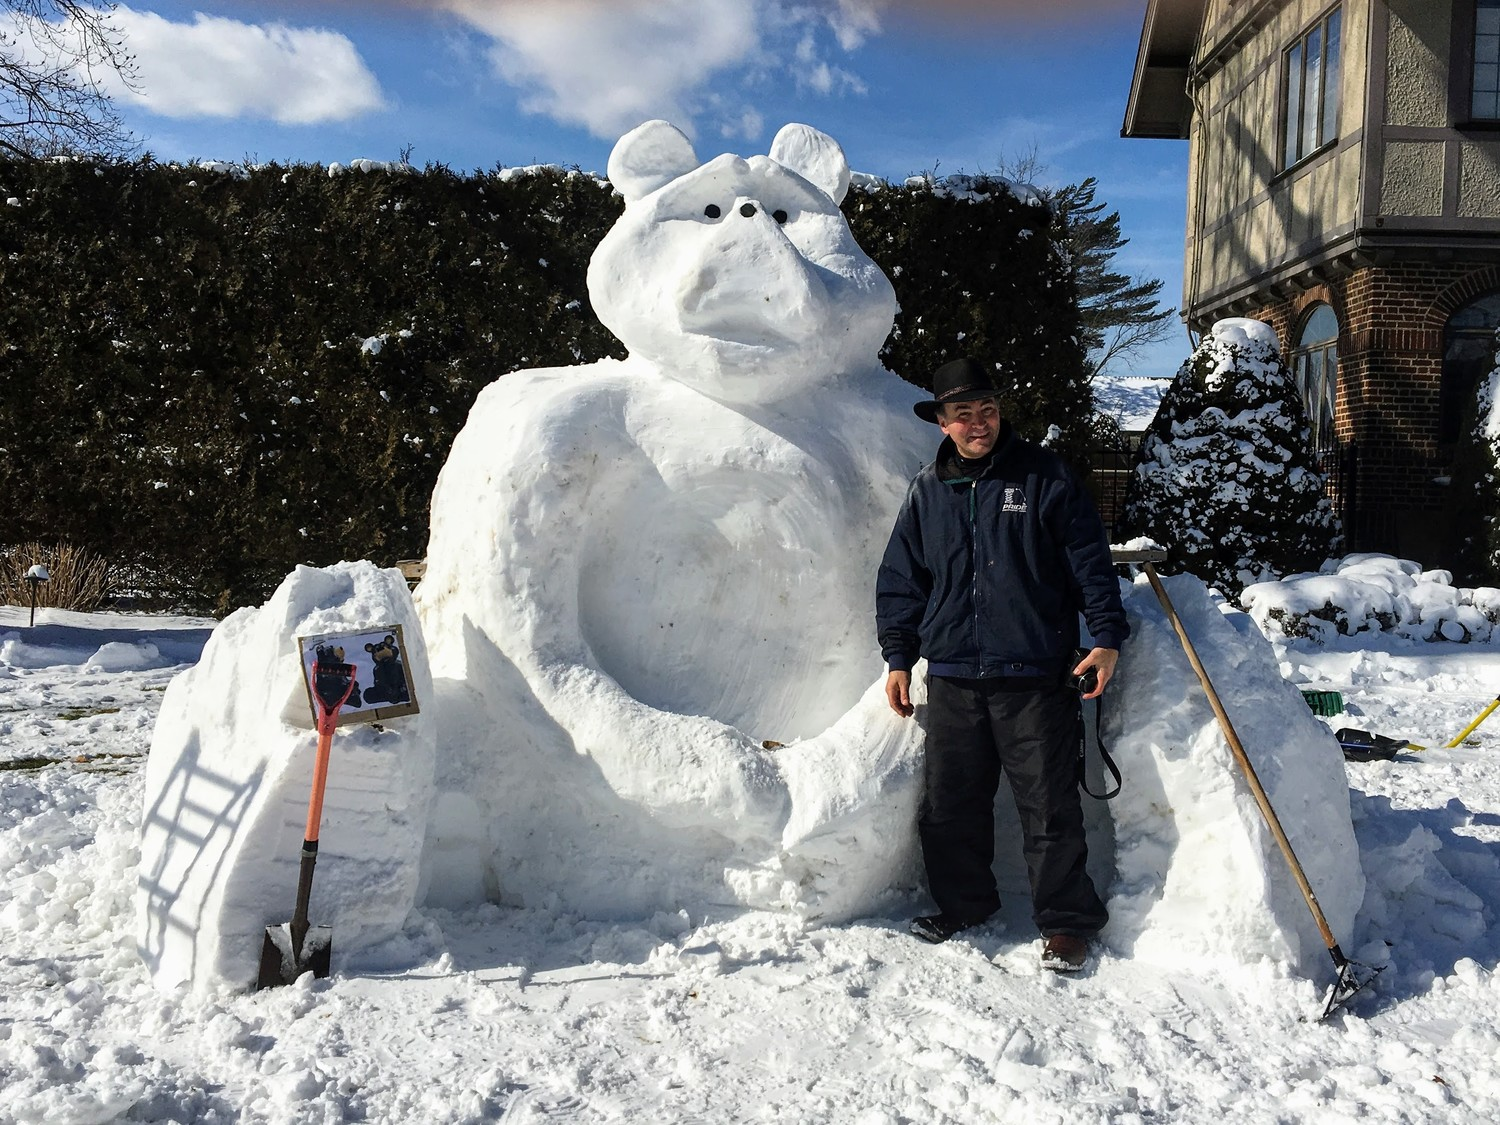 Bevilacqua previously sculpted a teddy bear to remember his late son, Mark, who loved bears. The masterpiece was a hit in the community.